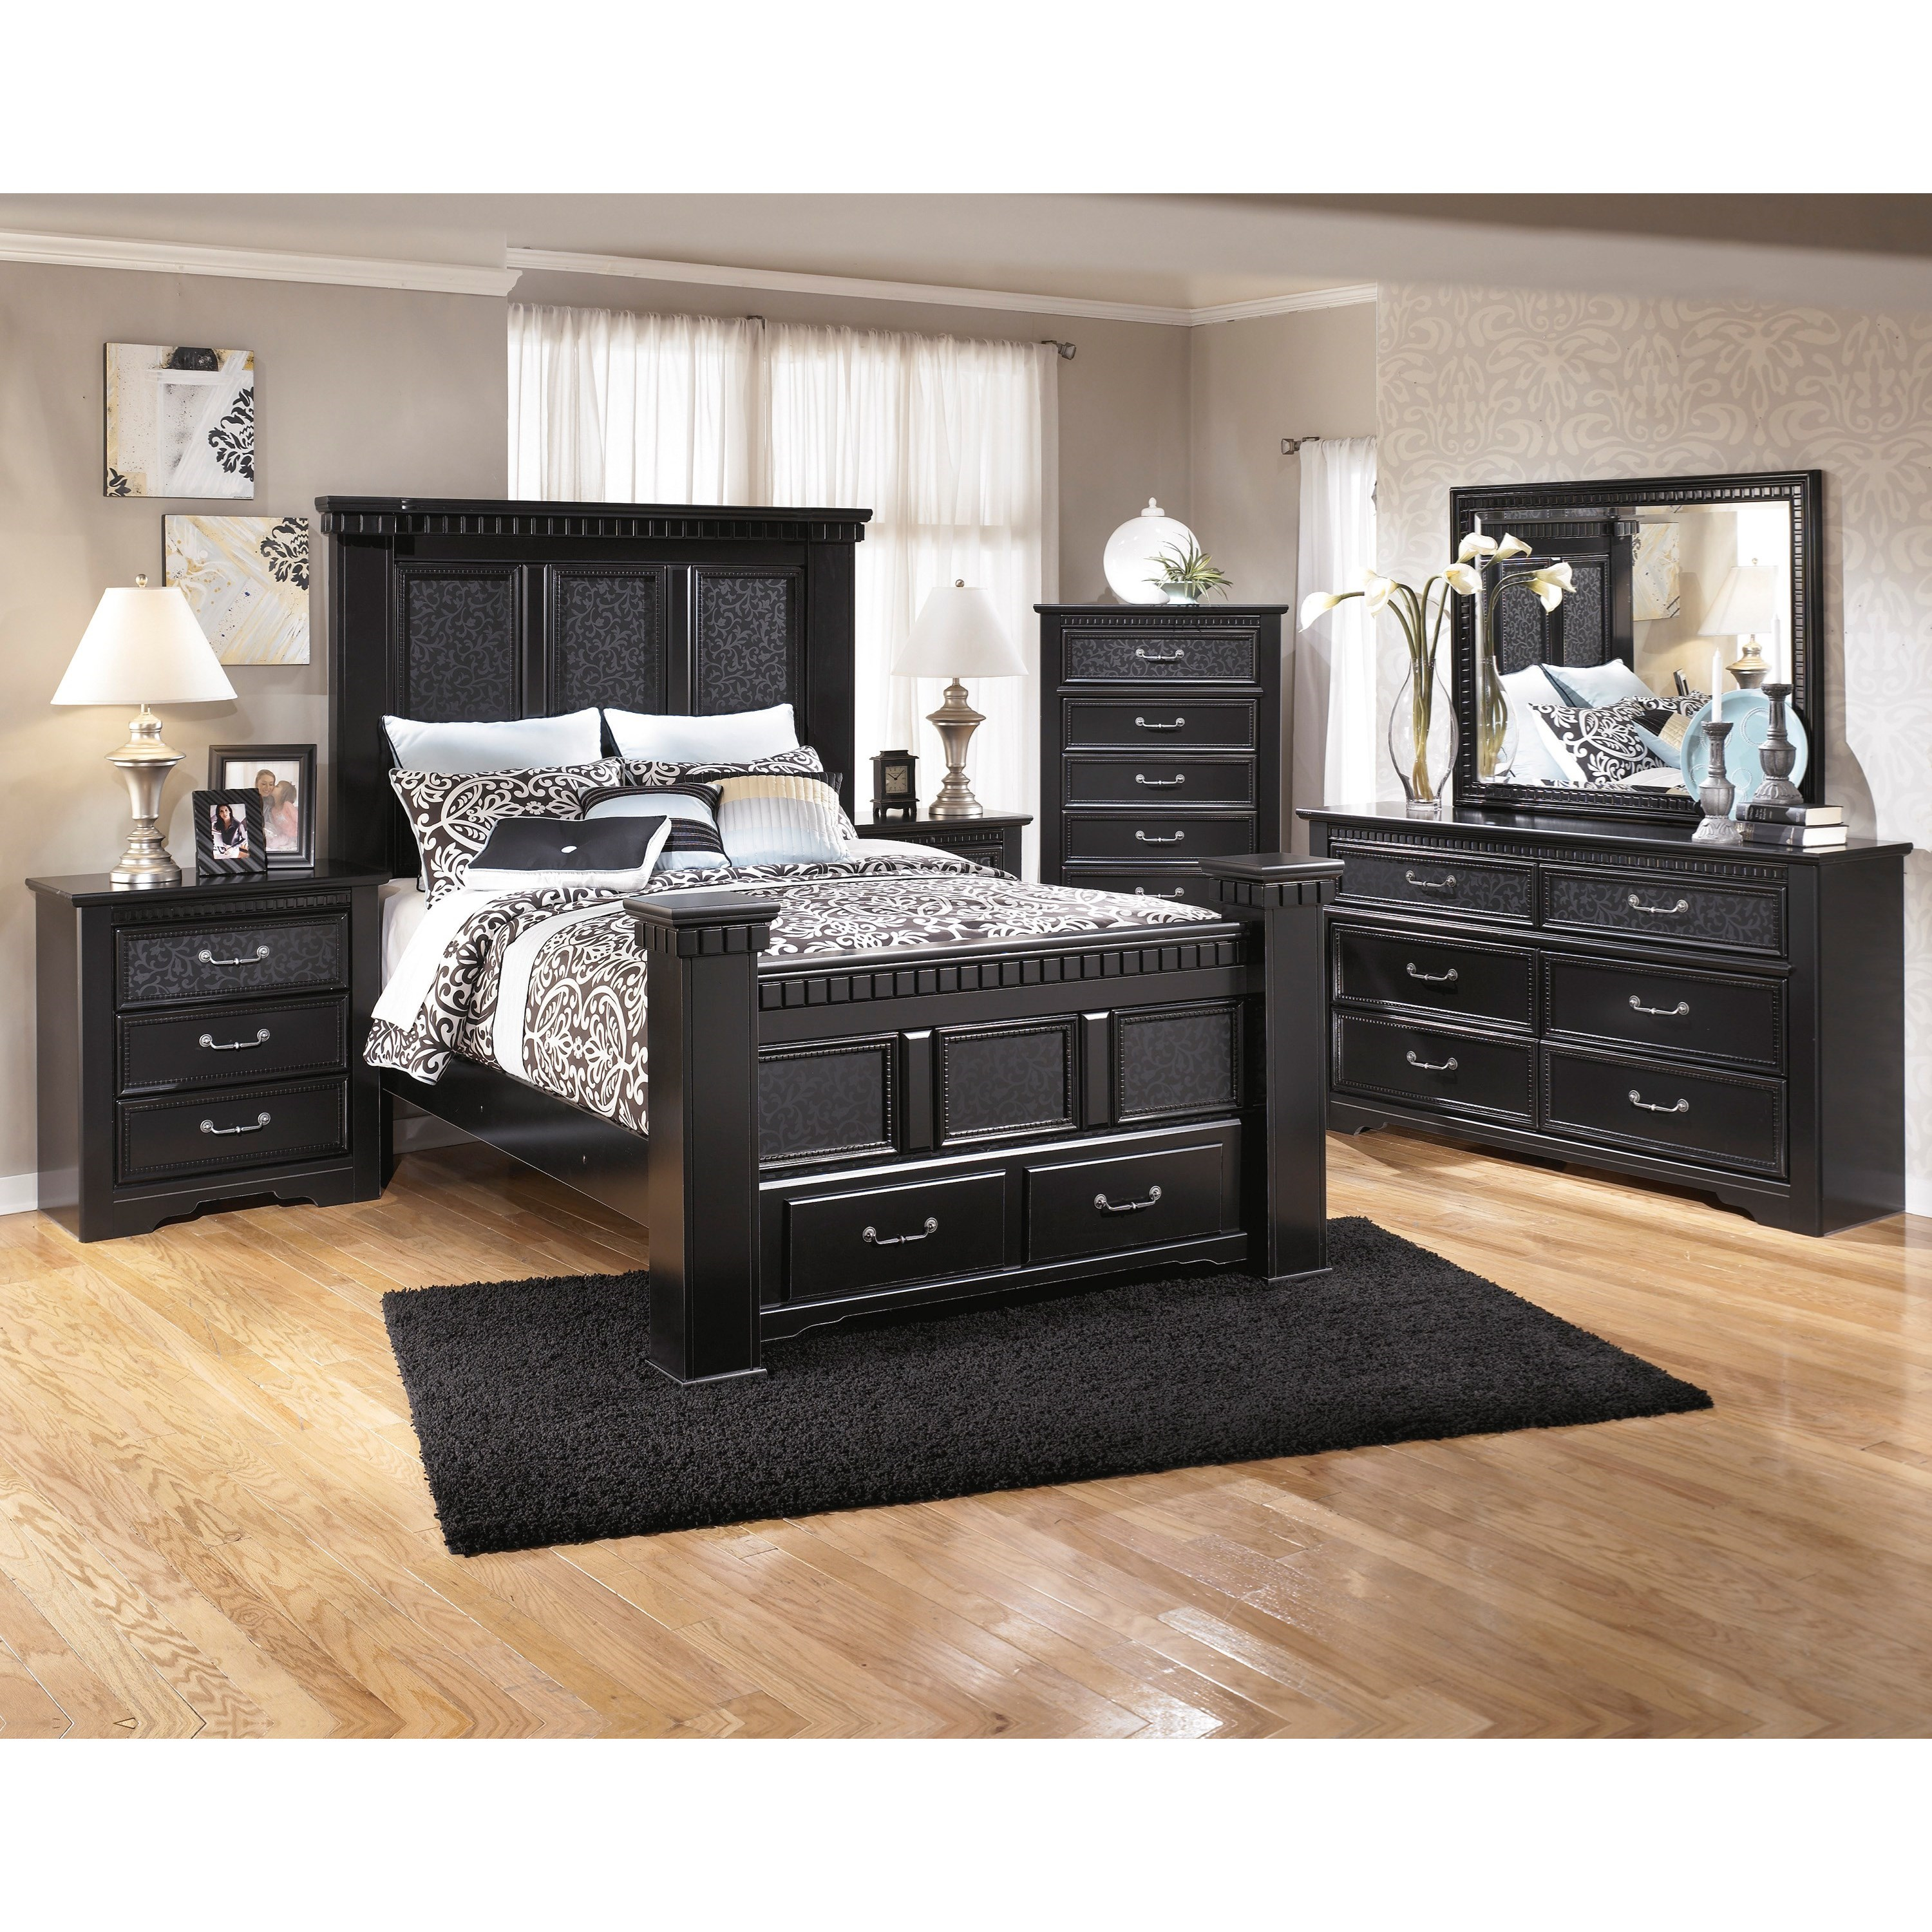 Signature Design by Ashley Cavallino Queen Bedroom Group - Item Number: B291 Q Bedroom Group 4